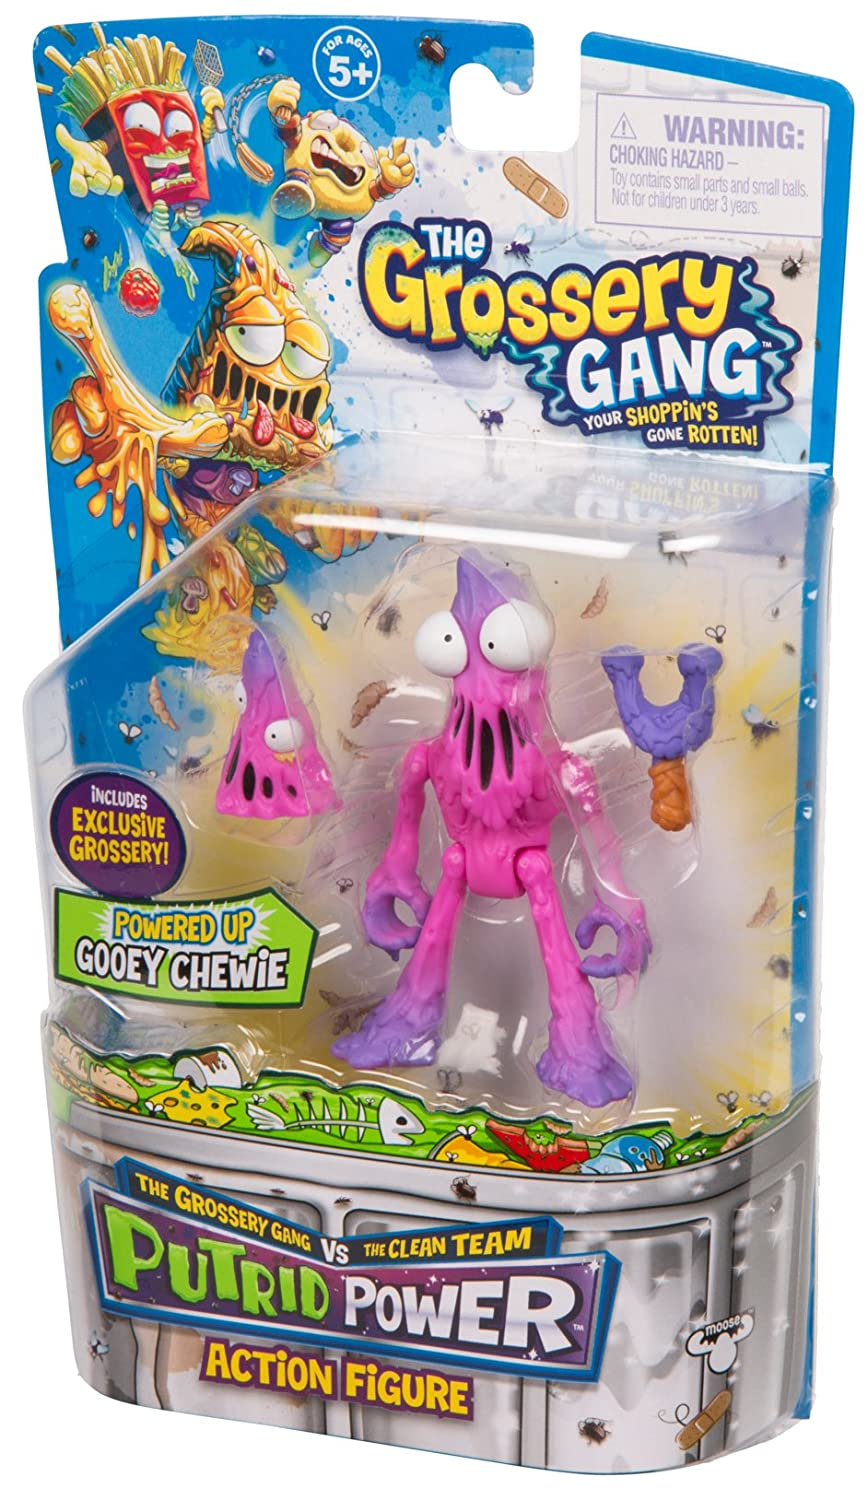 Grossery Gang The Season 3 Action Figurine Blow Fry Moose Toys Import 69056